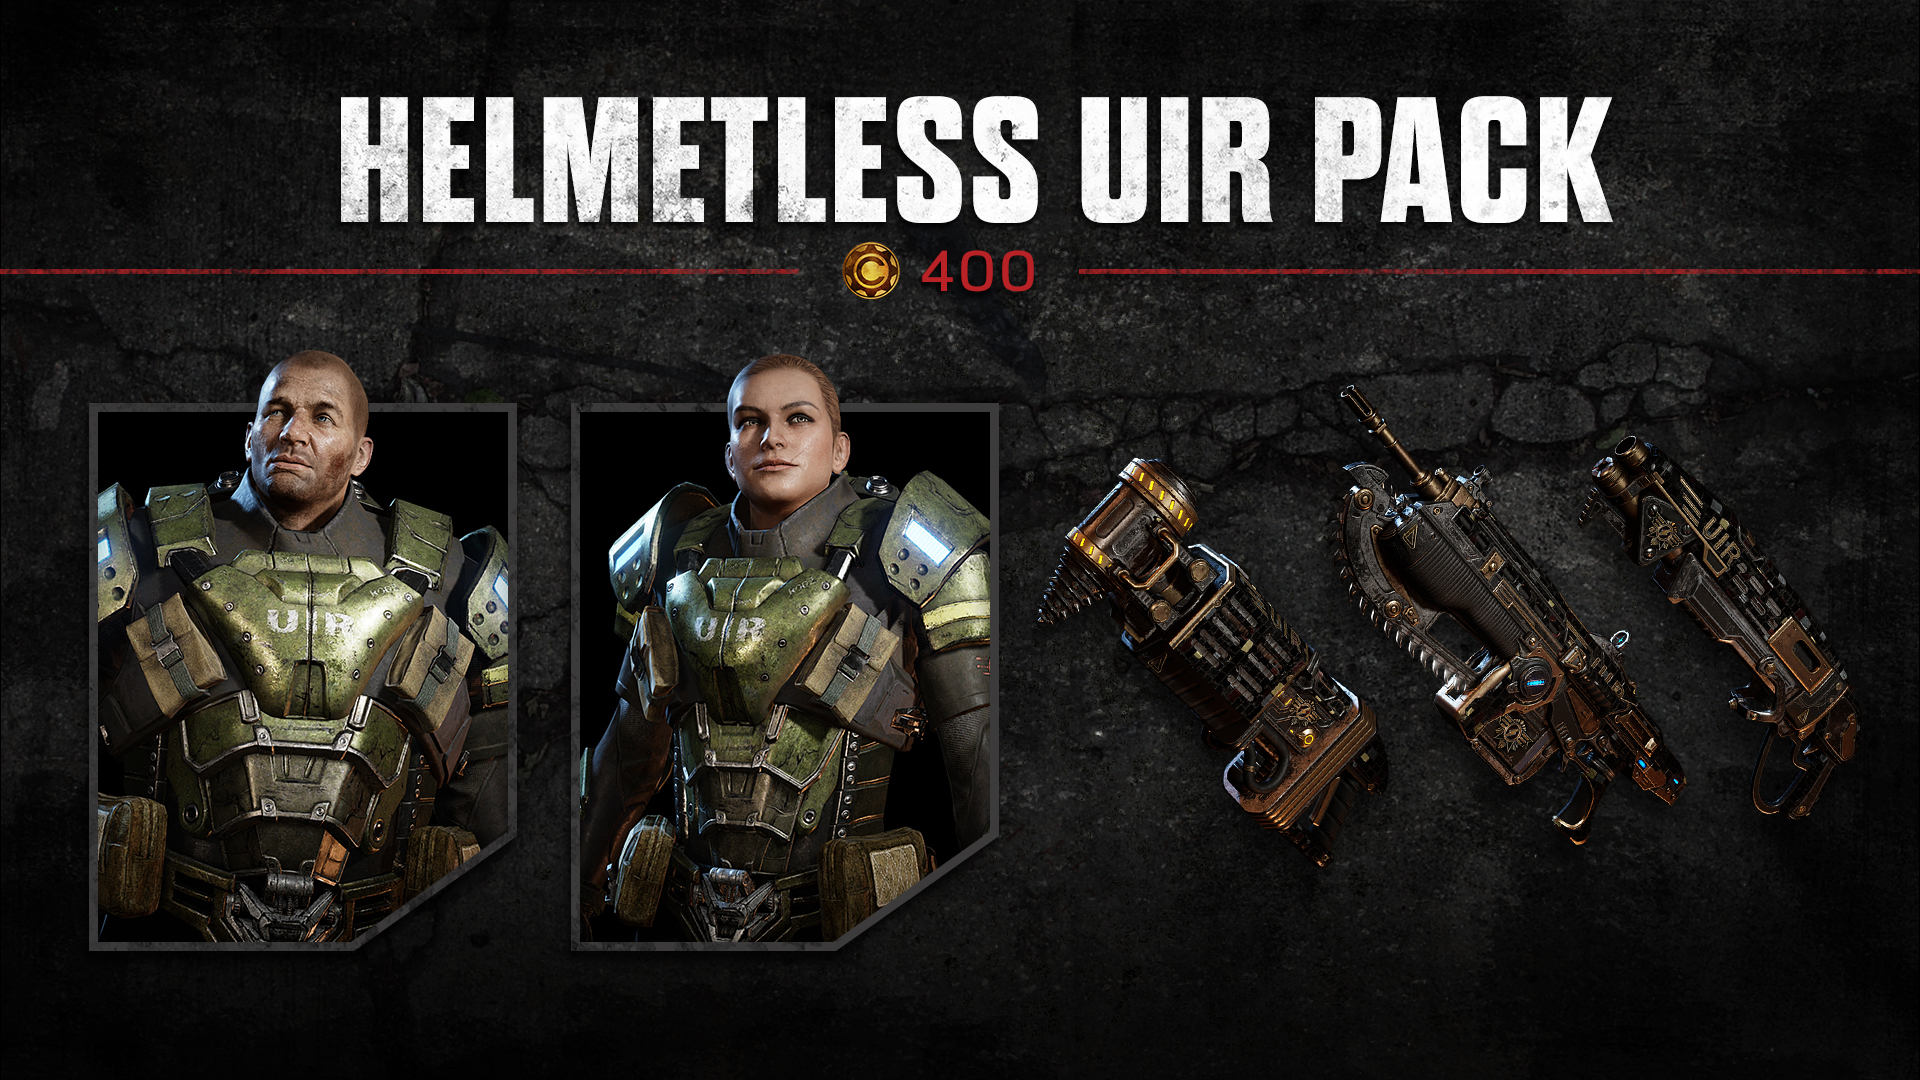 Gears of War - What's Up? May 17th 2018 | Community | Gears